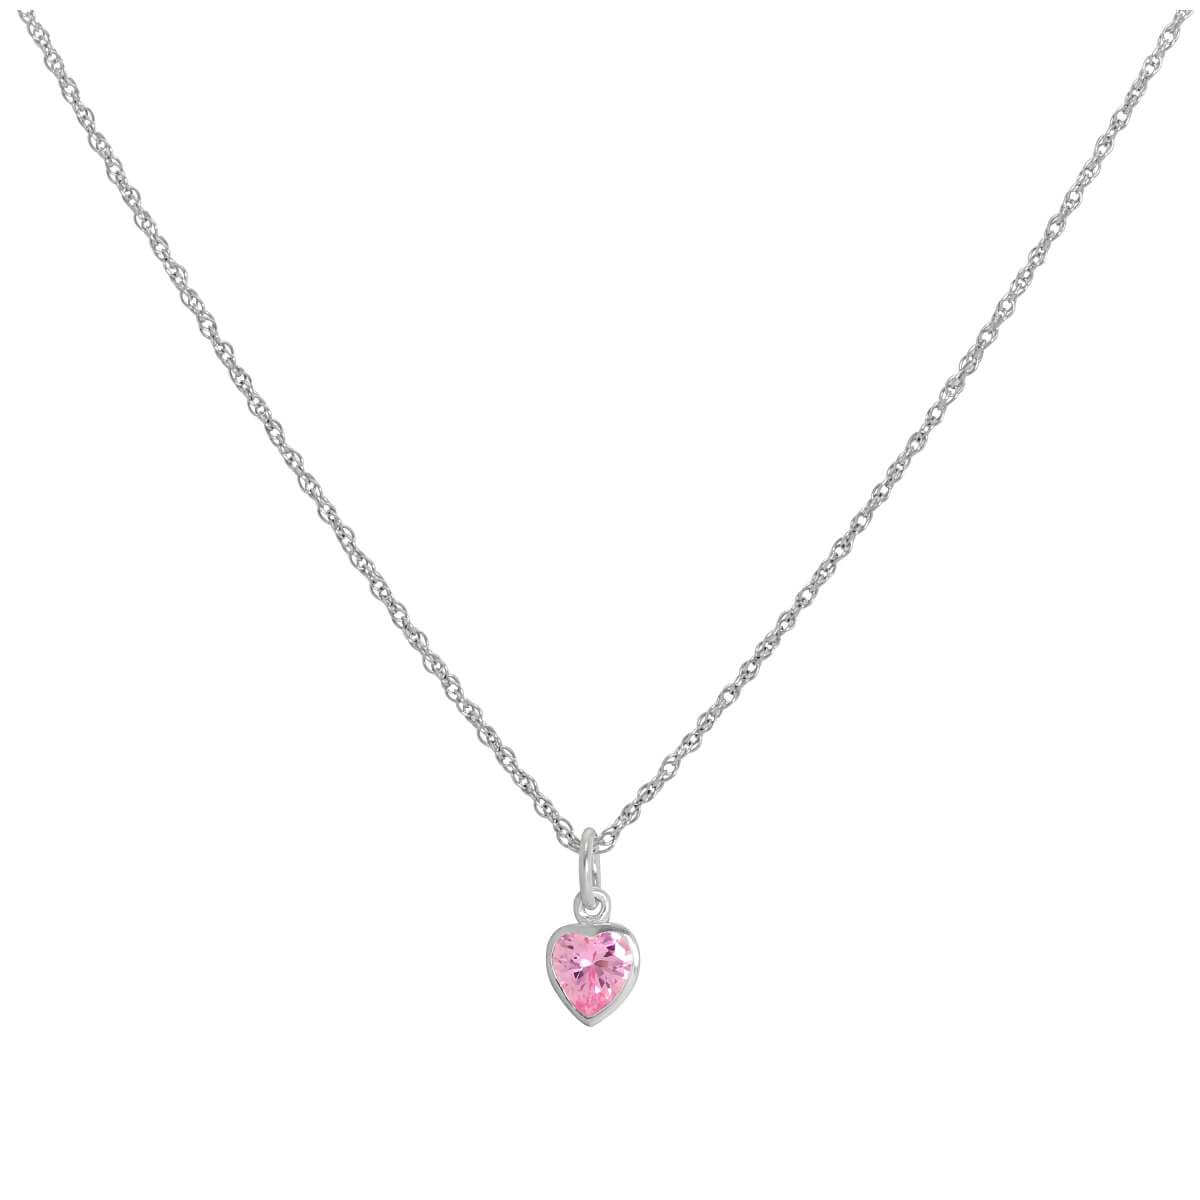 Sterling Silver Pink Heart Crystal Pendant Necklace 14 - 22 Inches